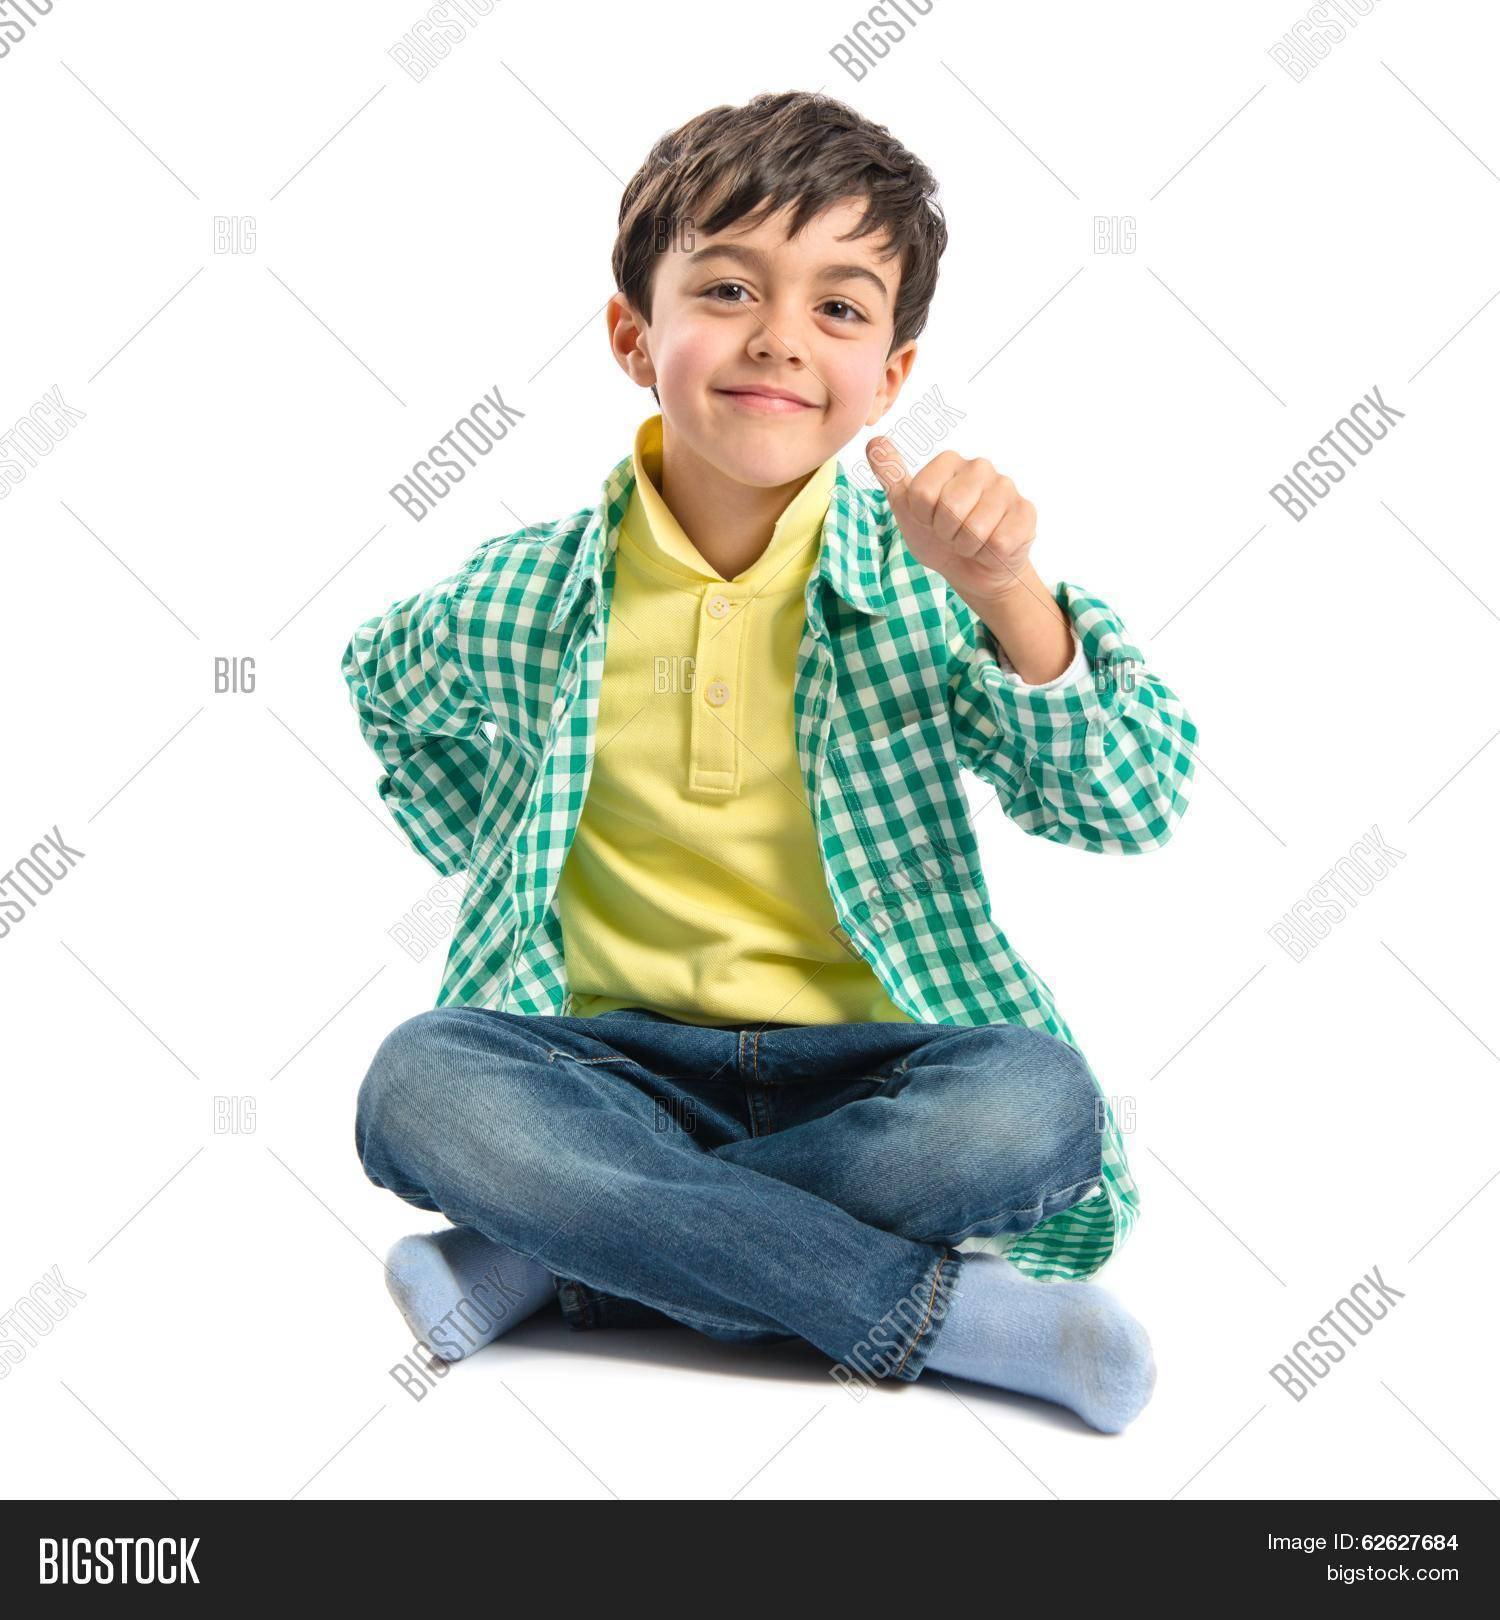 890790f10e Boy Making Ok Sign On Image & Photo (Free Trial) | Bigstock